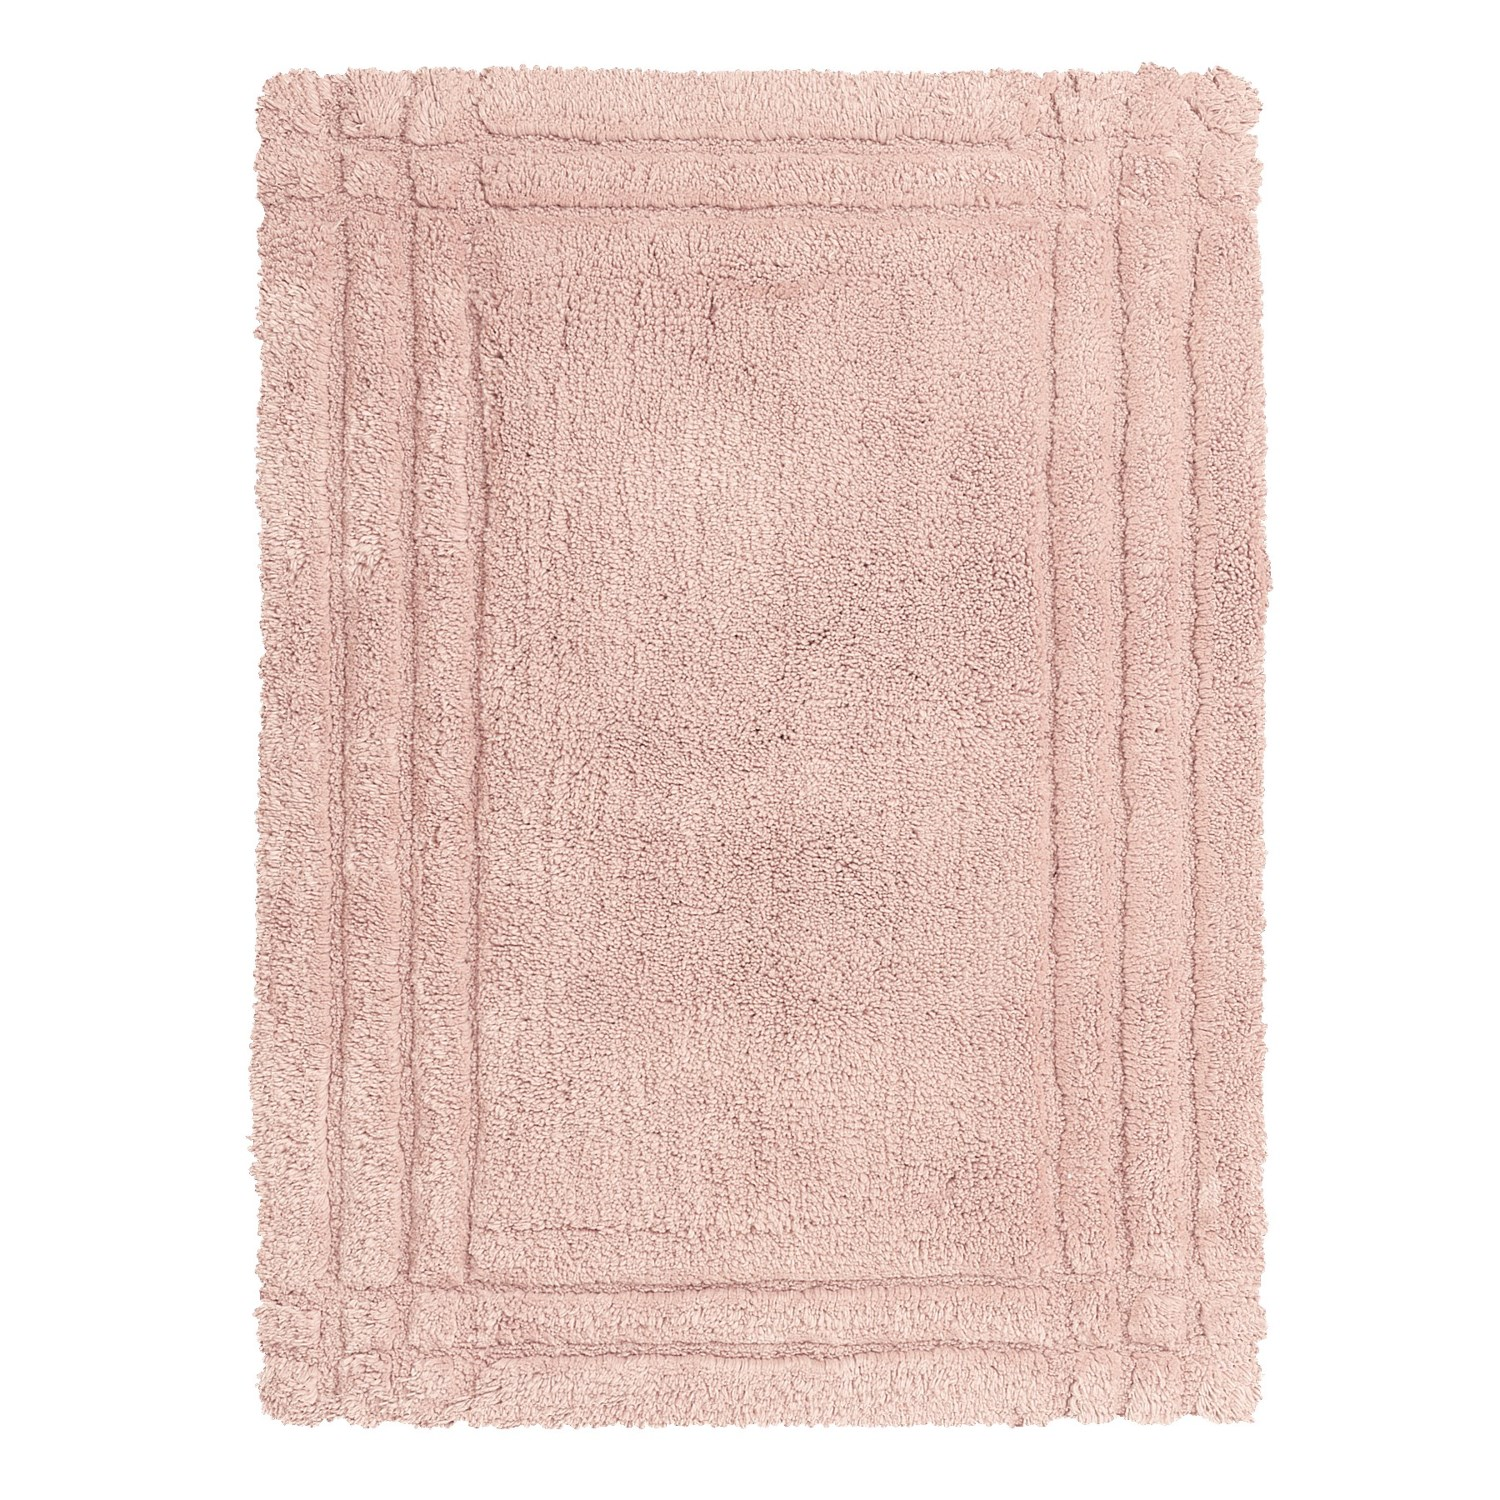 Filename: Christy Renaissance Bath Rug Small  In Pale Rose~p~4545w_22~1500.2